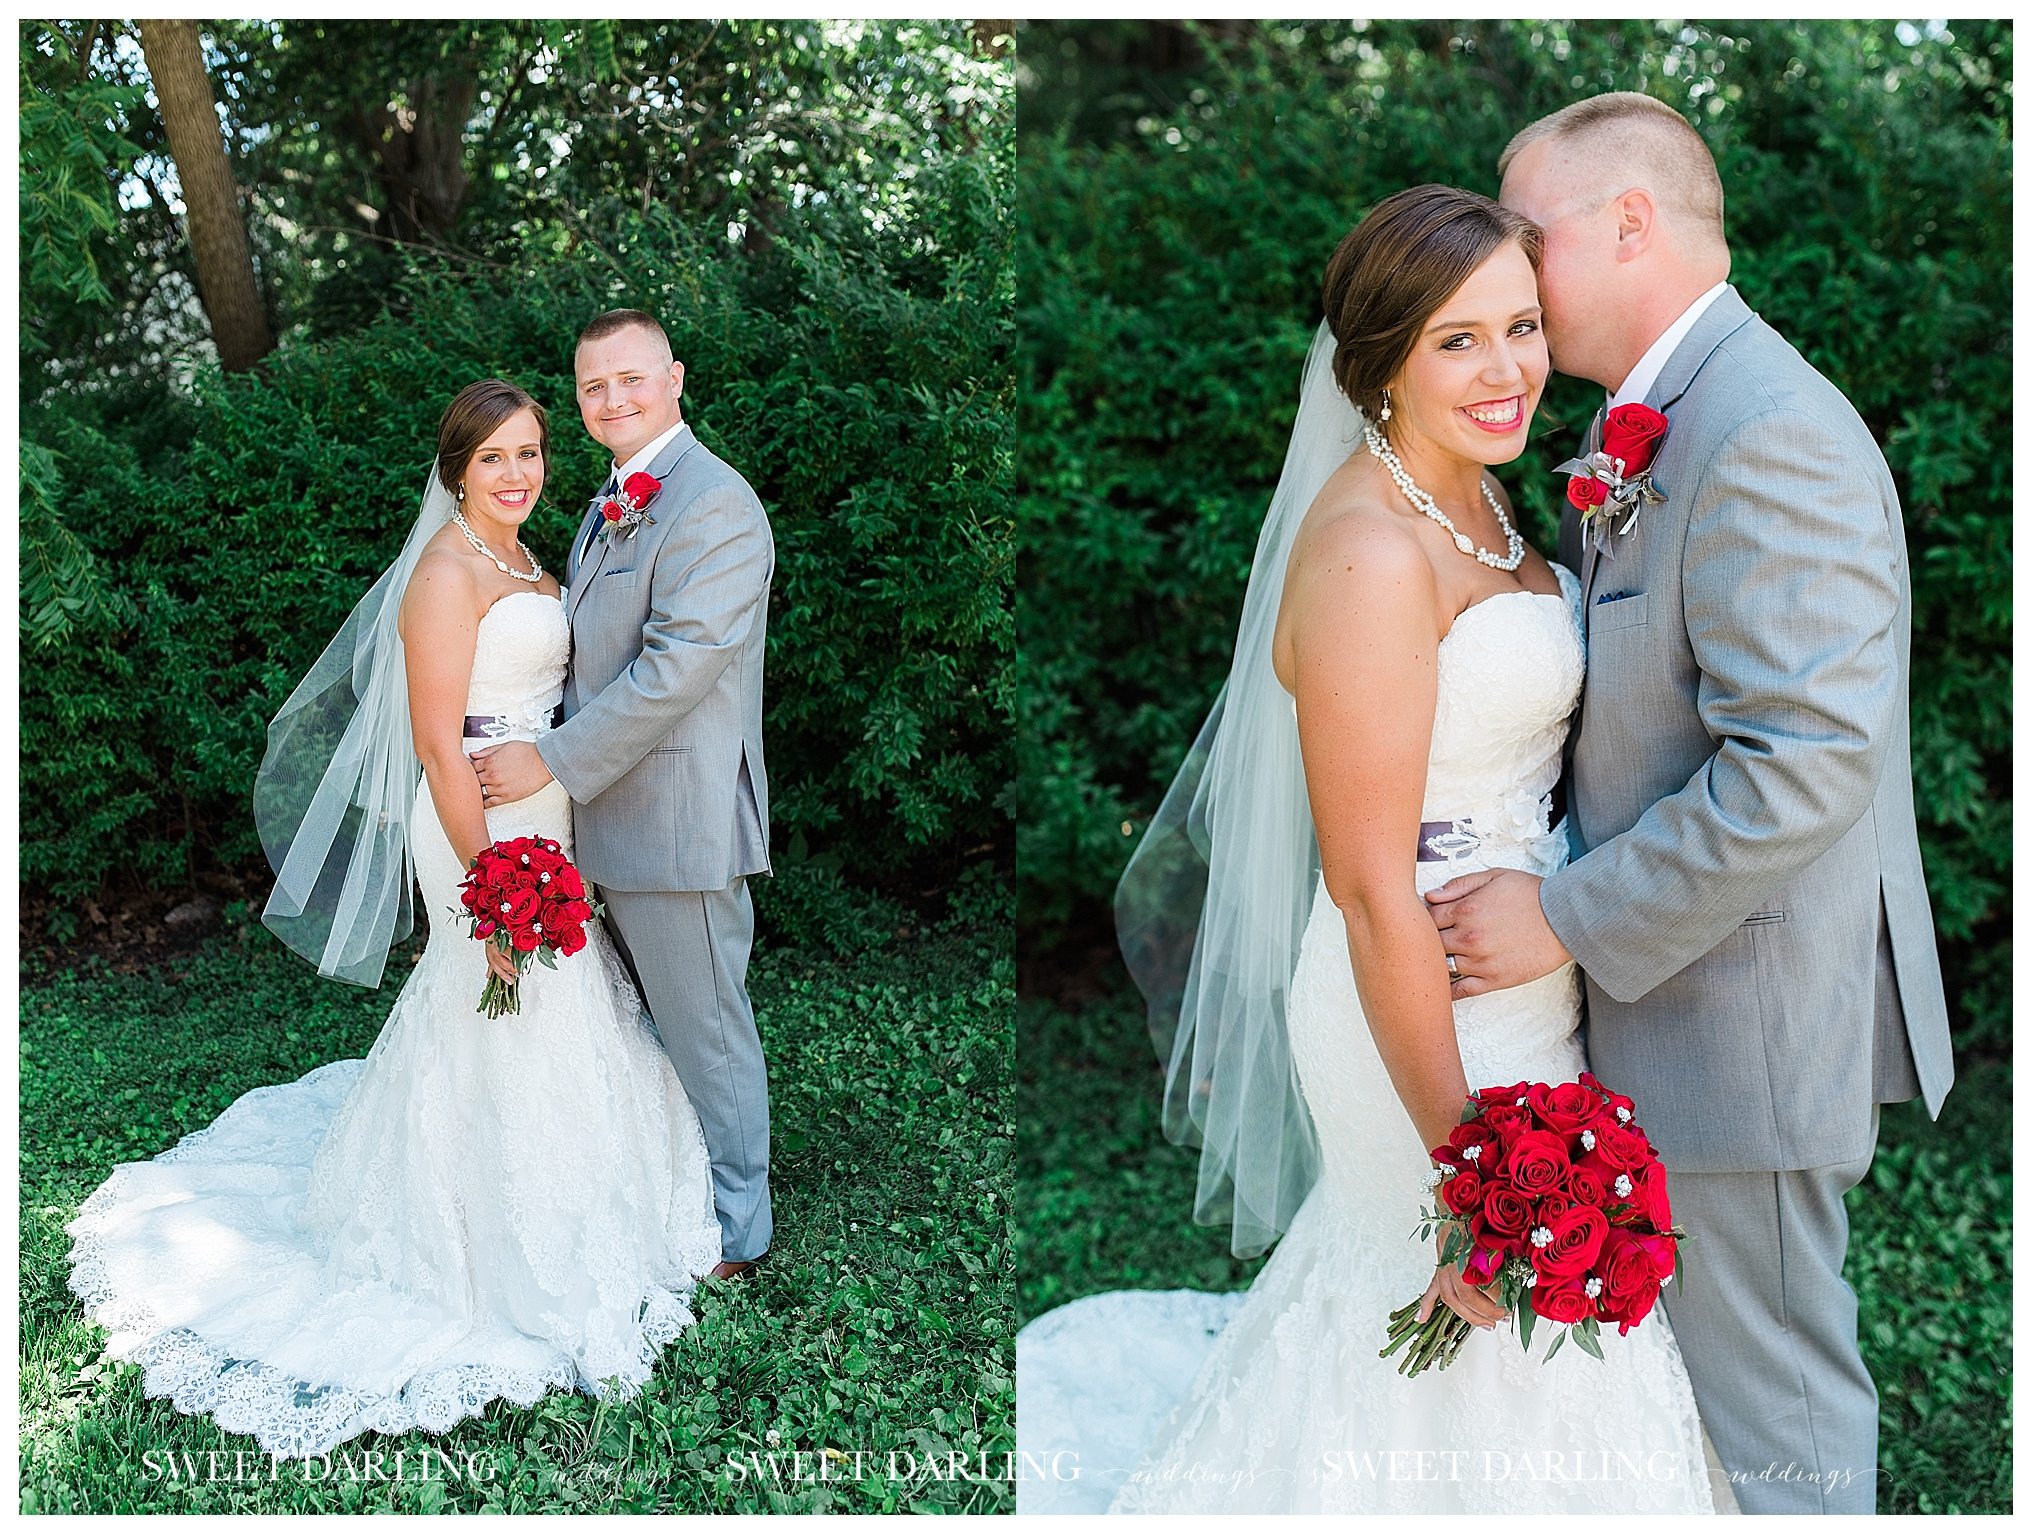 champaign-county-royal-paxton-illinois-sweet-darling-weddings-photography-red-navy-roses_1378.jpg